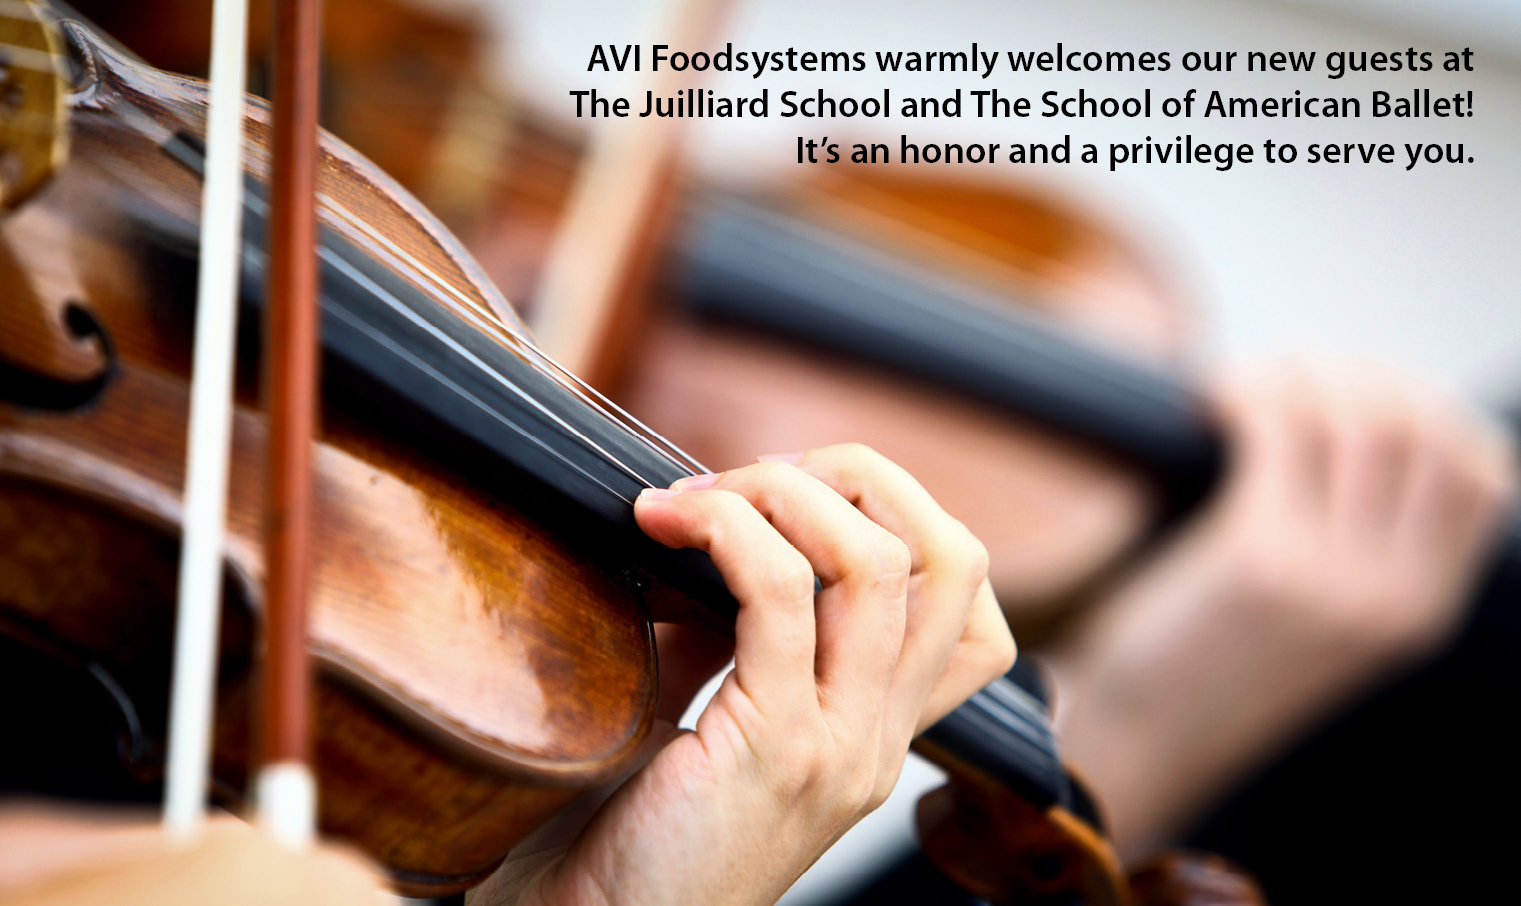 AVI Foodsystems Welcomes New Guests